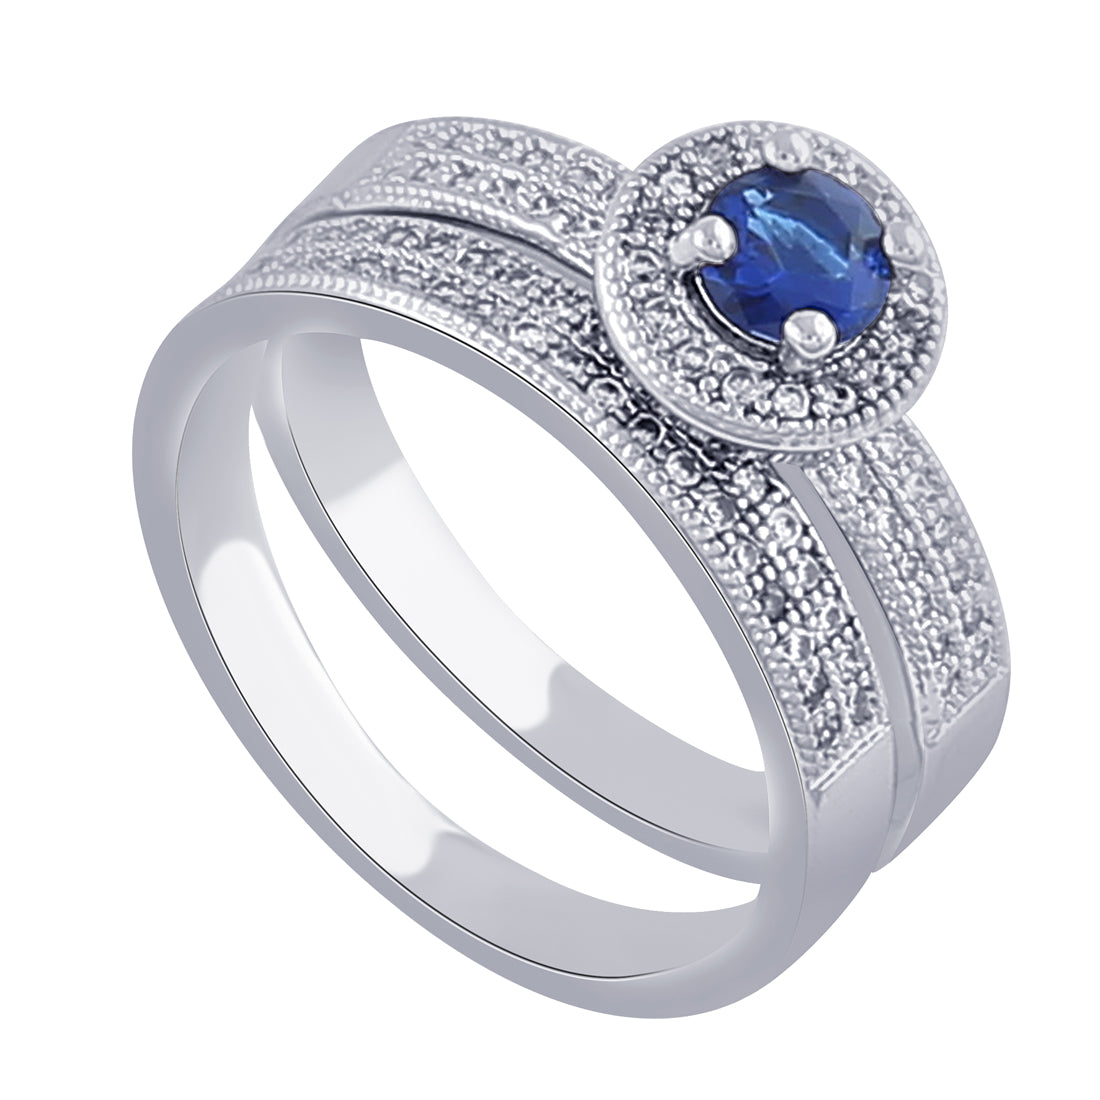 Blue Crystal Ceremonial Ring-THE BLING STORES1-Finger Ring